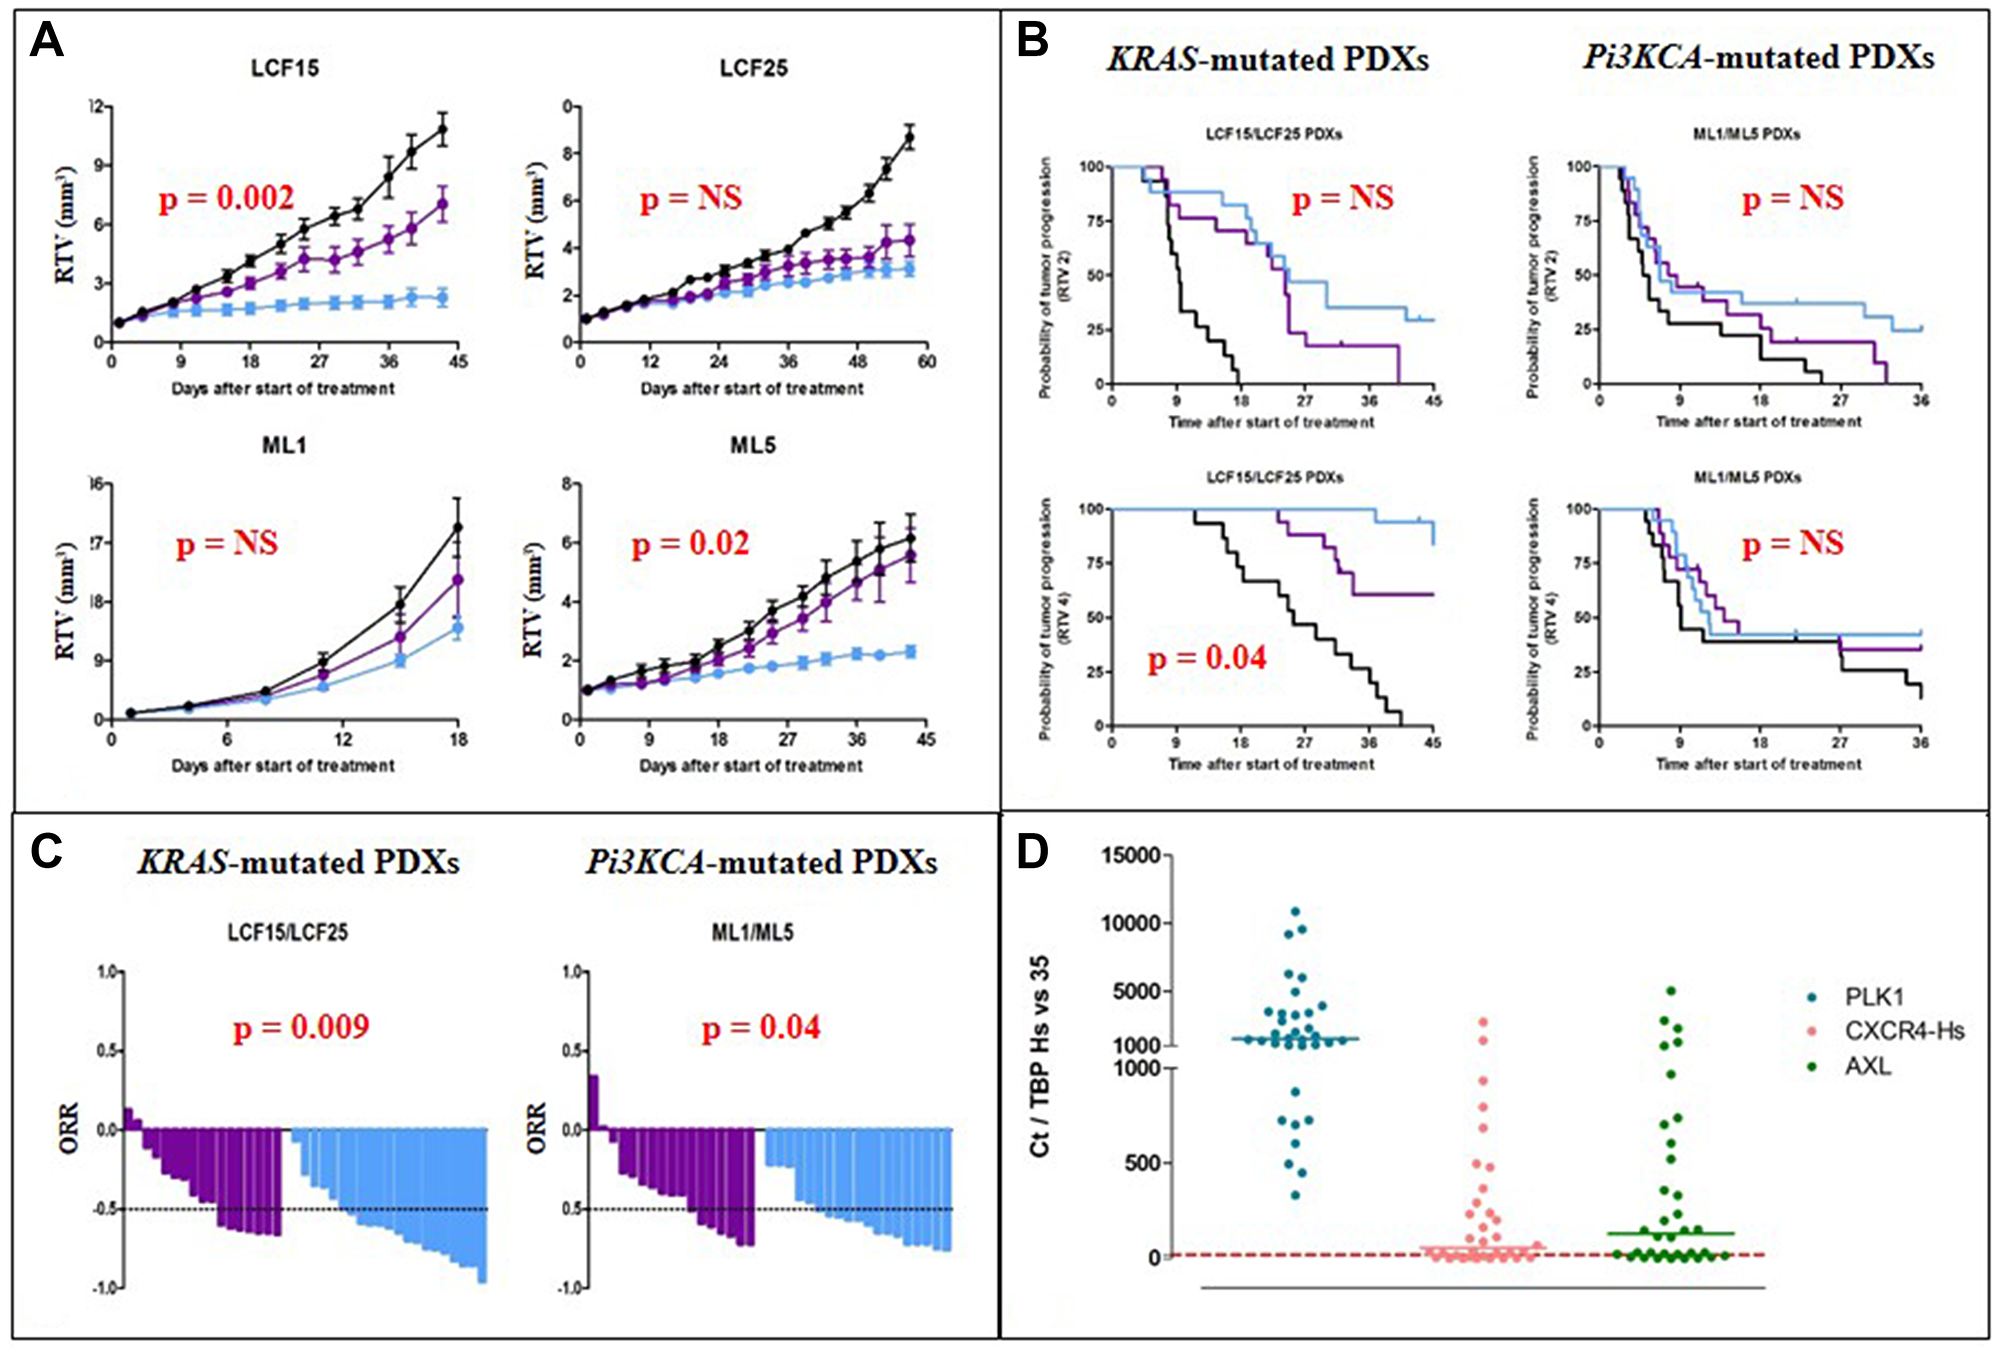 In vivo efficacy of Pi3K-targeted therapies in NSCLC PDXs.